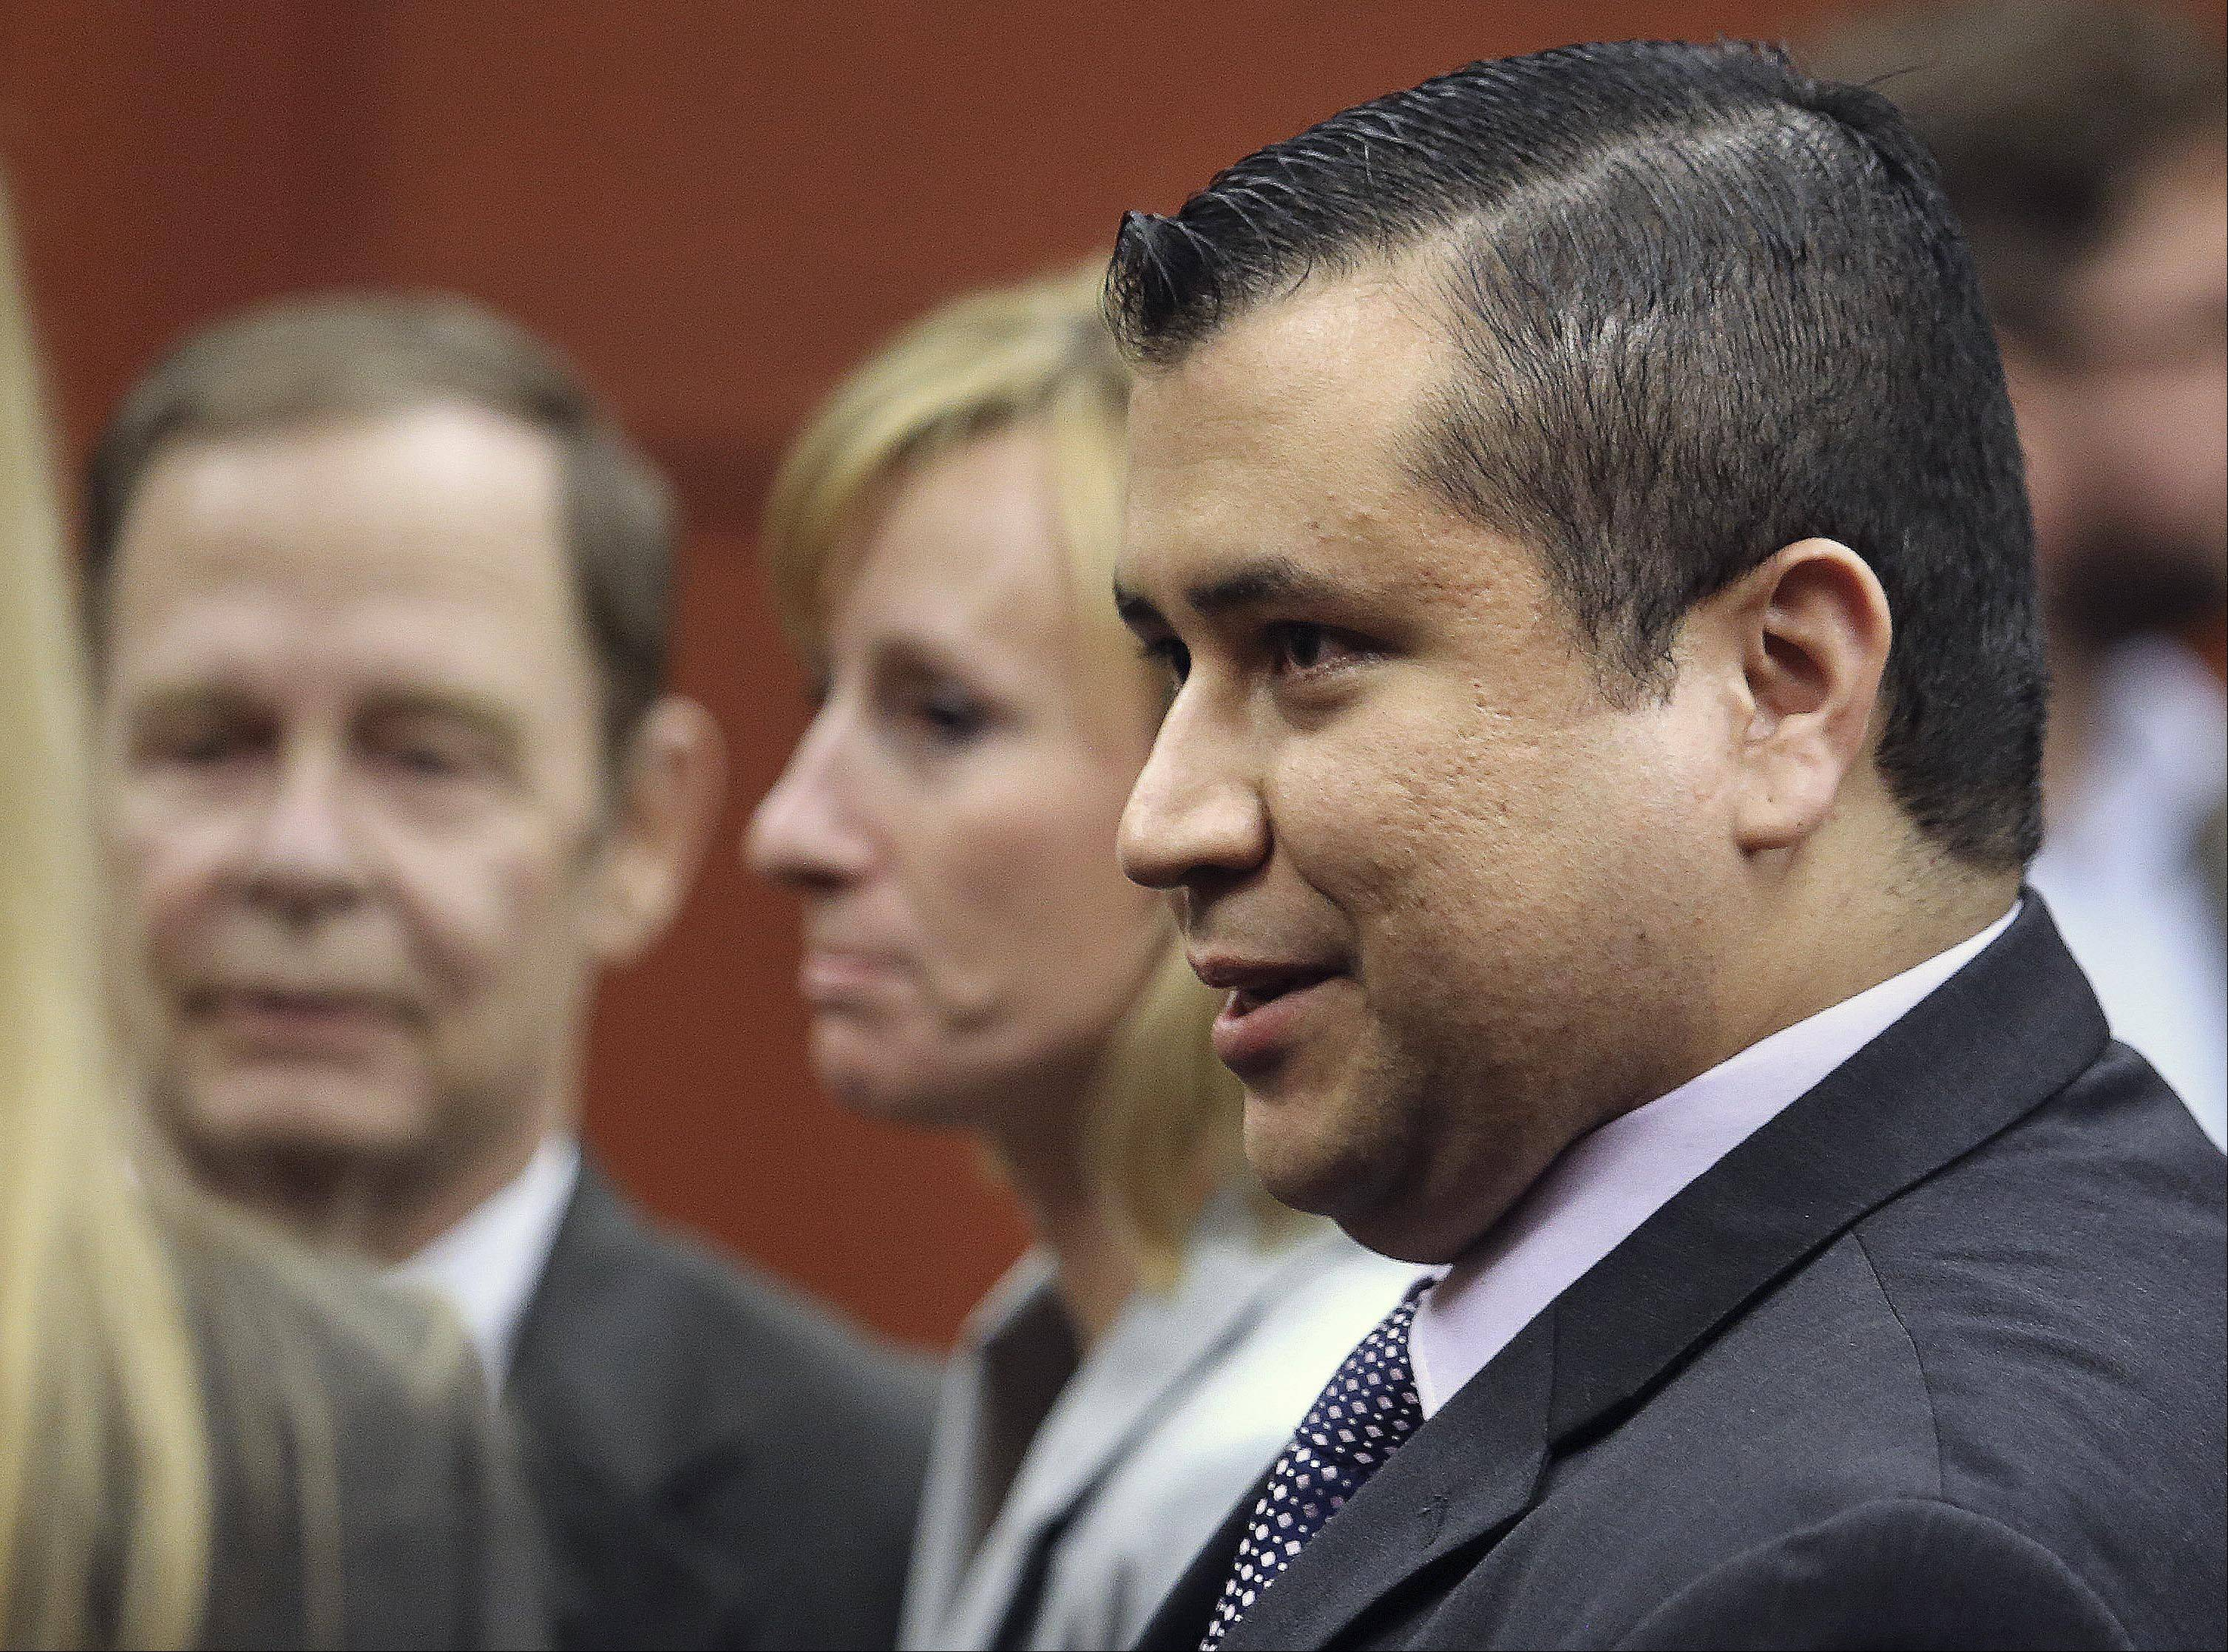 An editorial on Zimmerman: A tragedy, a trial and a nation's anger